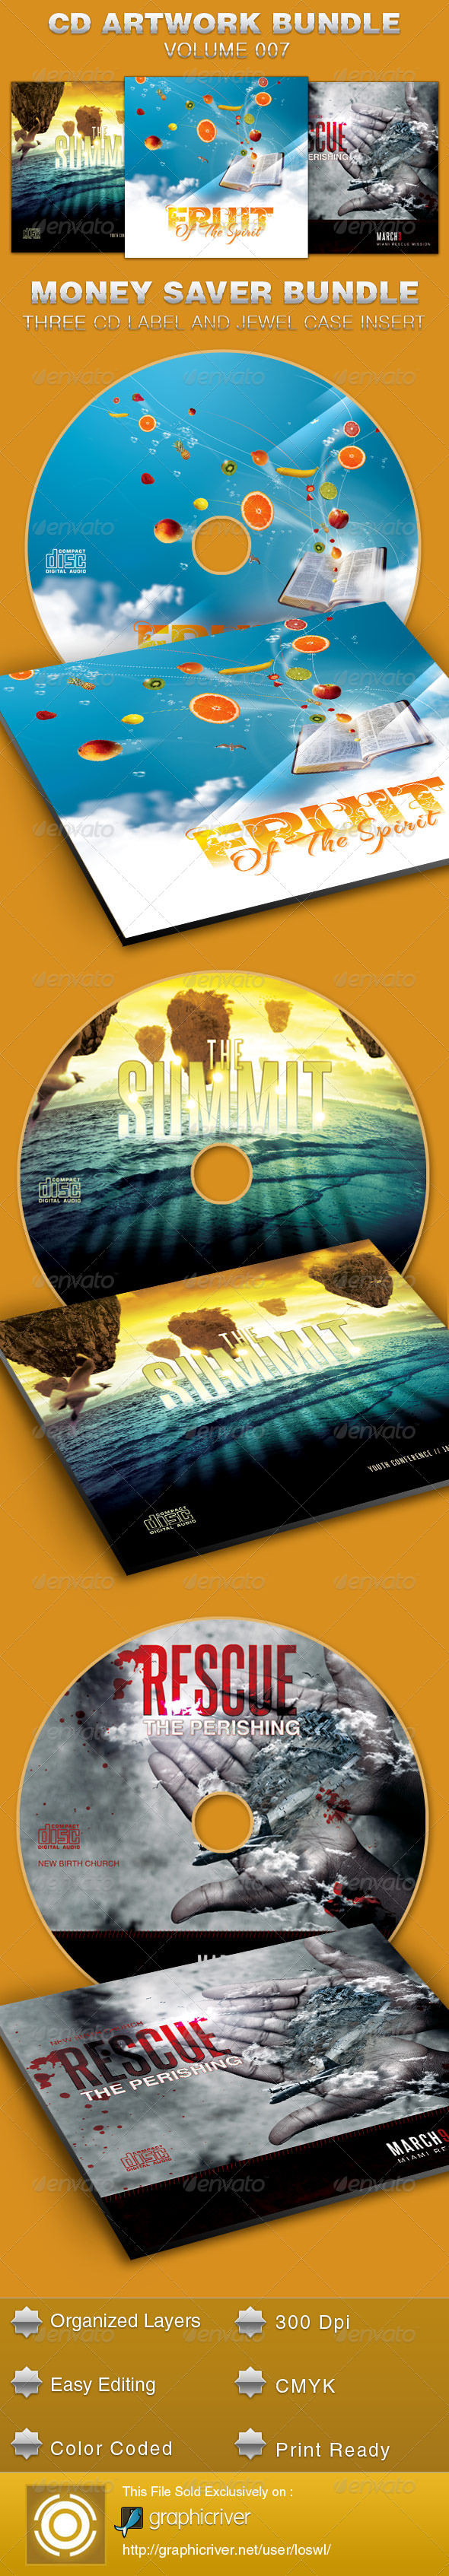 CD Cover Artwork Bundle-Vol 007 - CD & DVD Artwork Print Templates